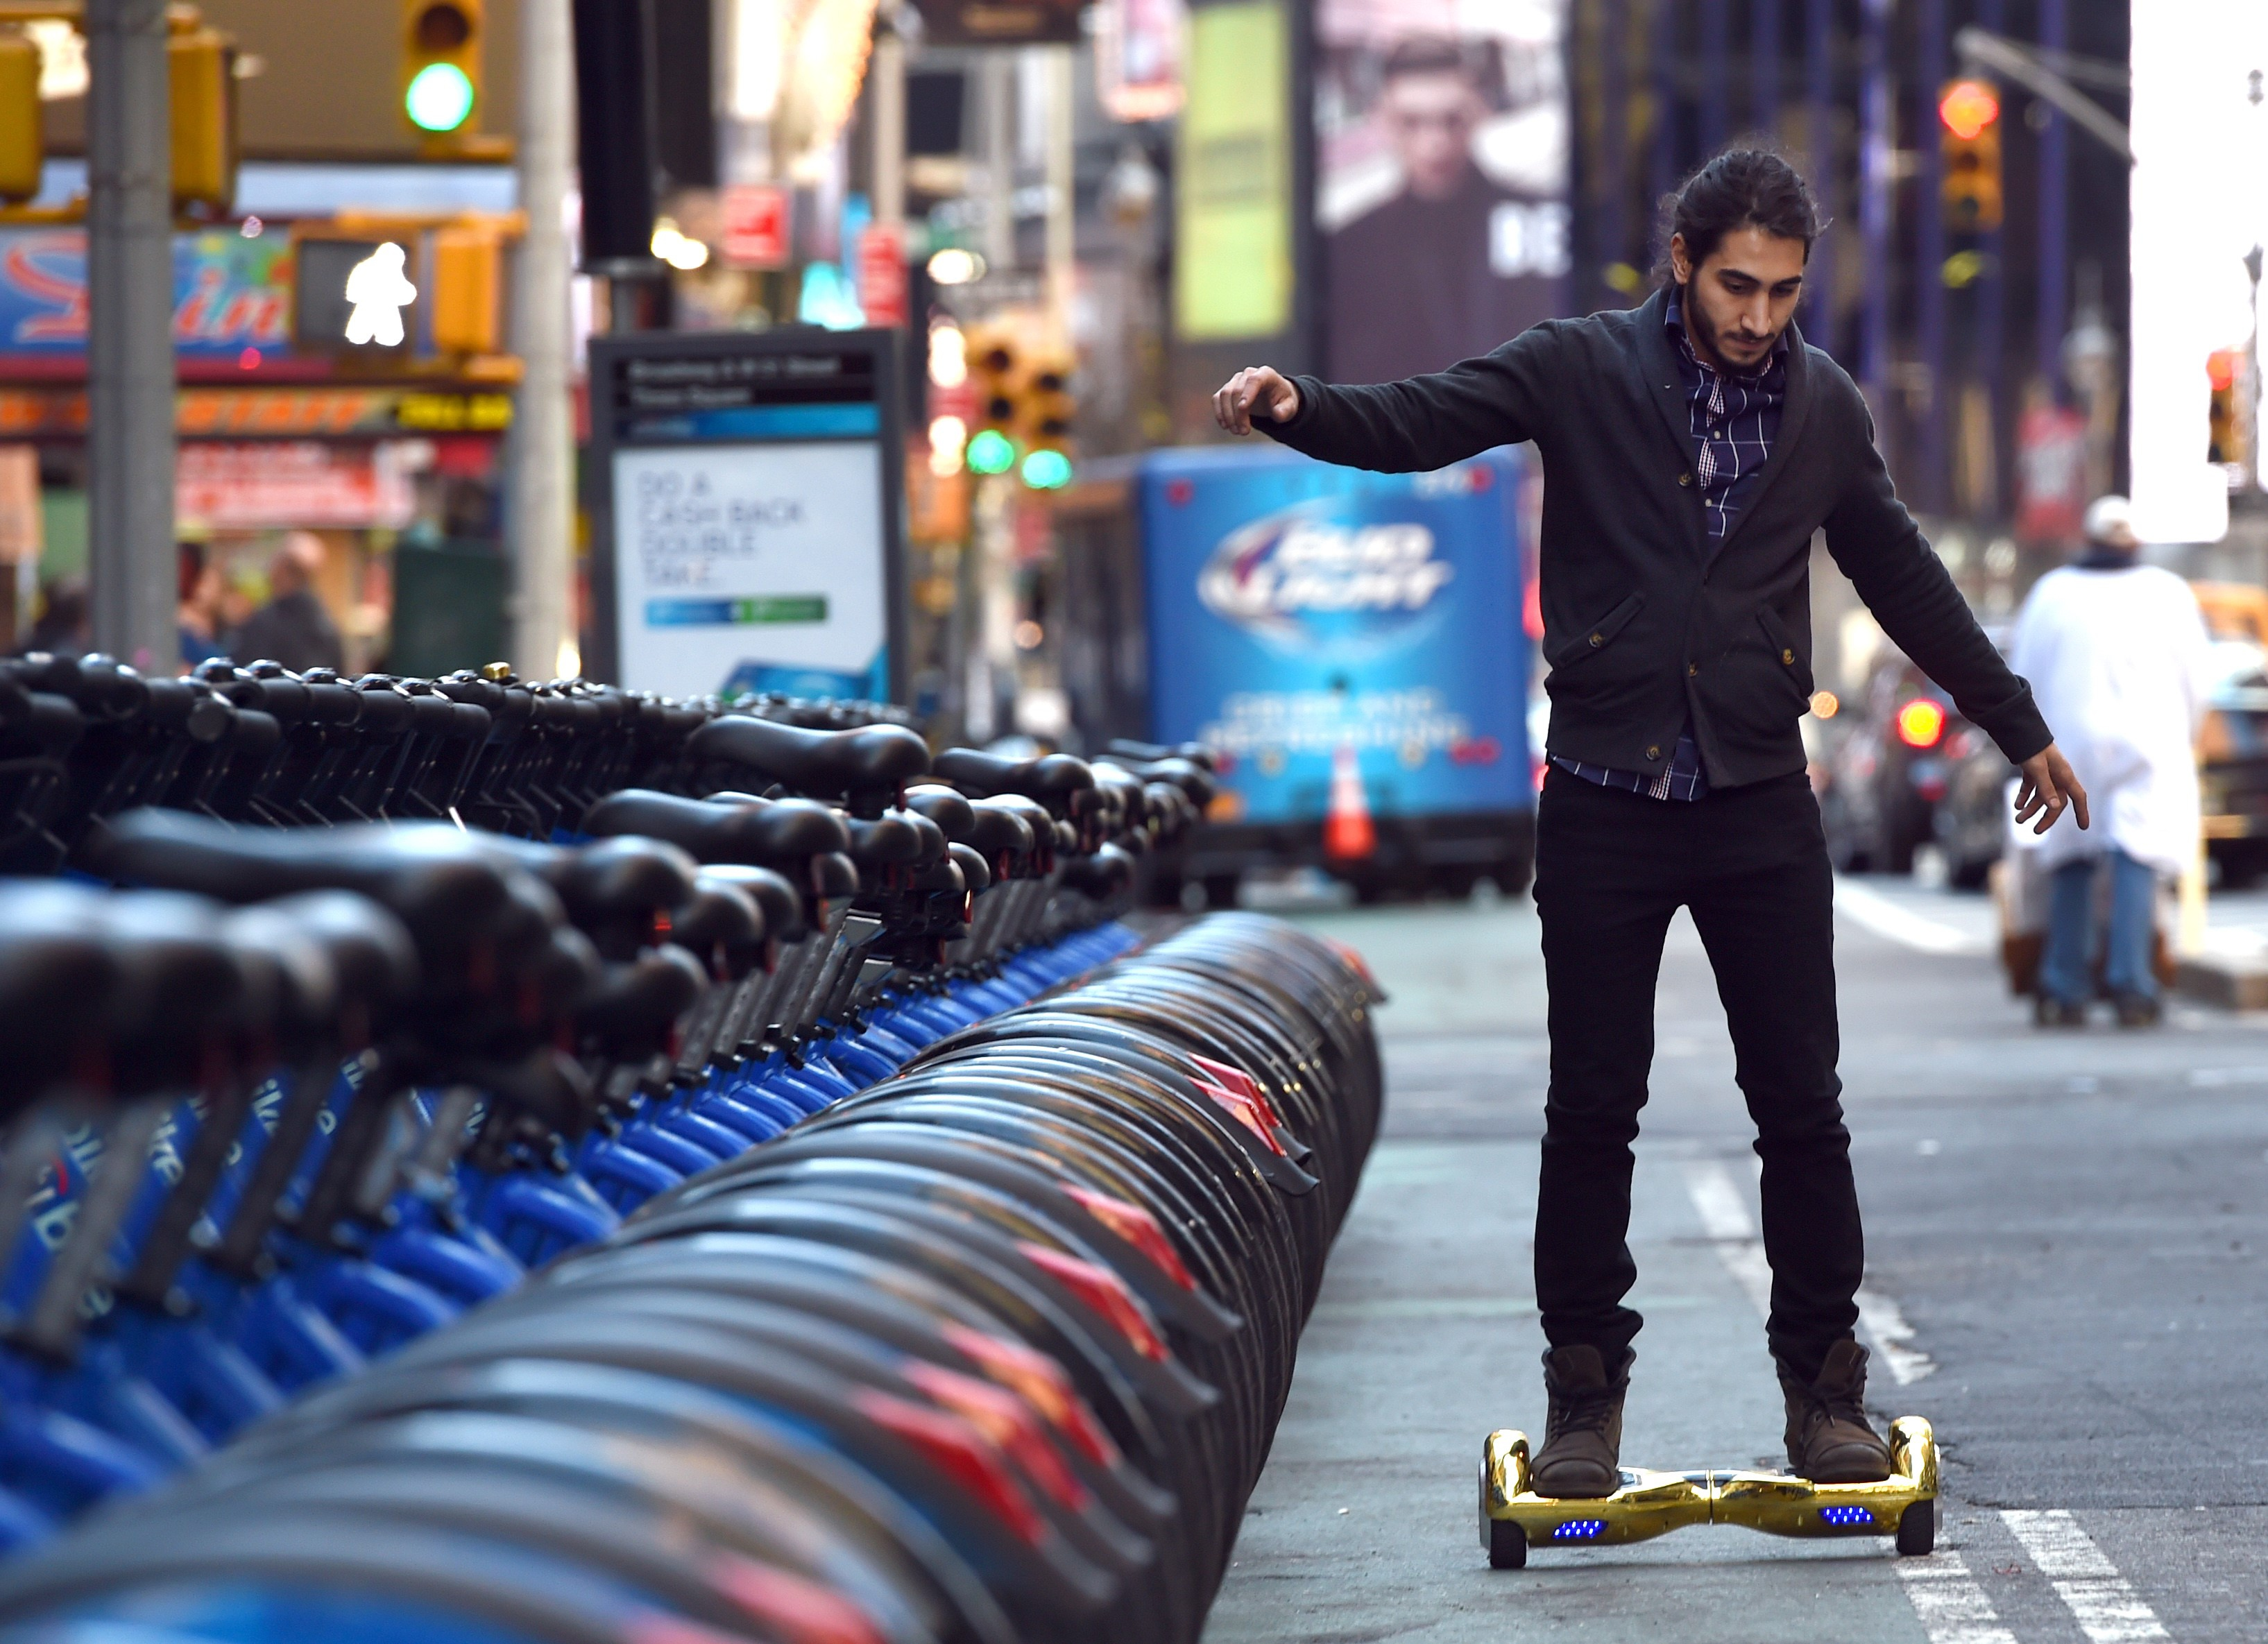 Whizboard Store manager 'Mor Loud'  demonstrates the Hoverboard on Broadway in Times Square December 15, 2015.